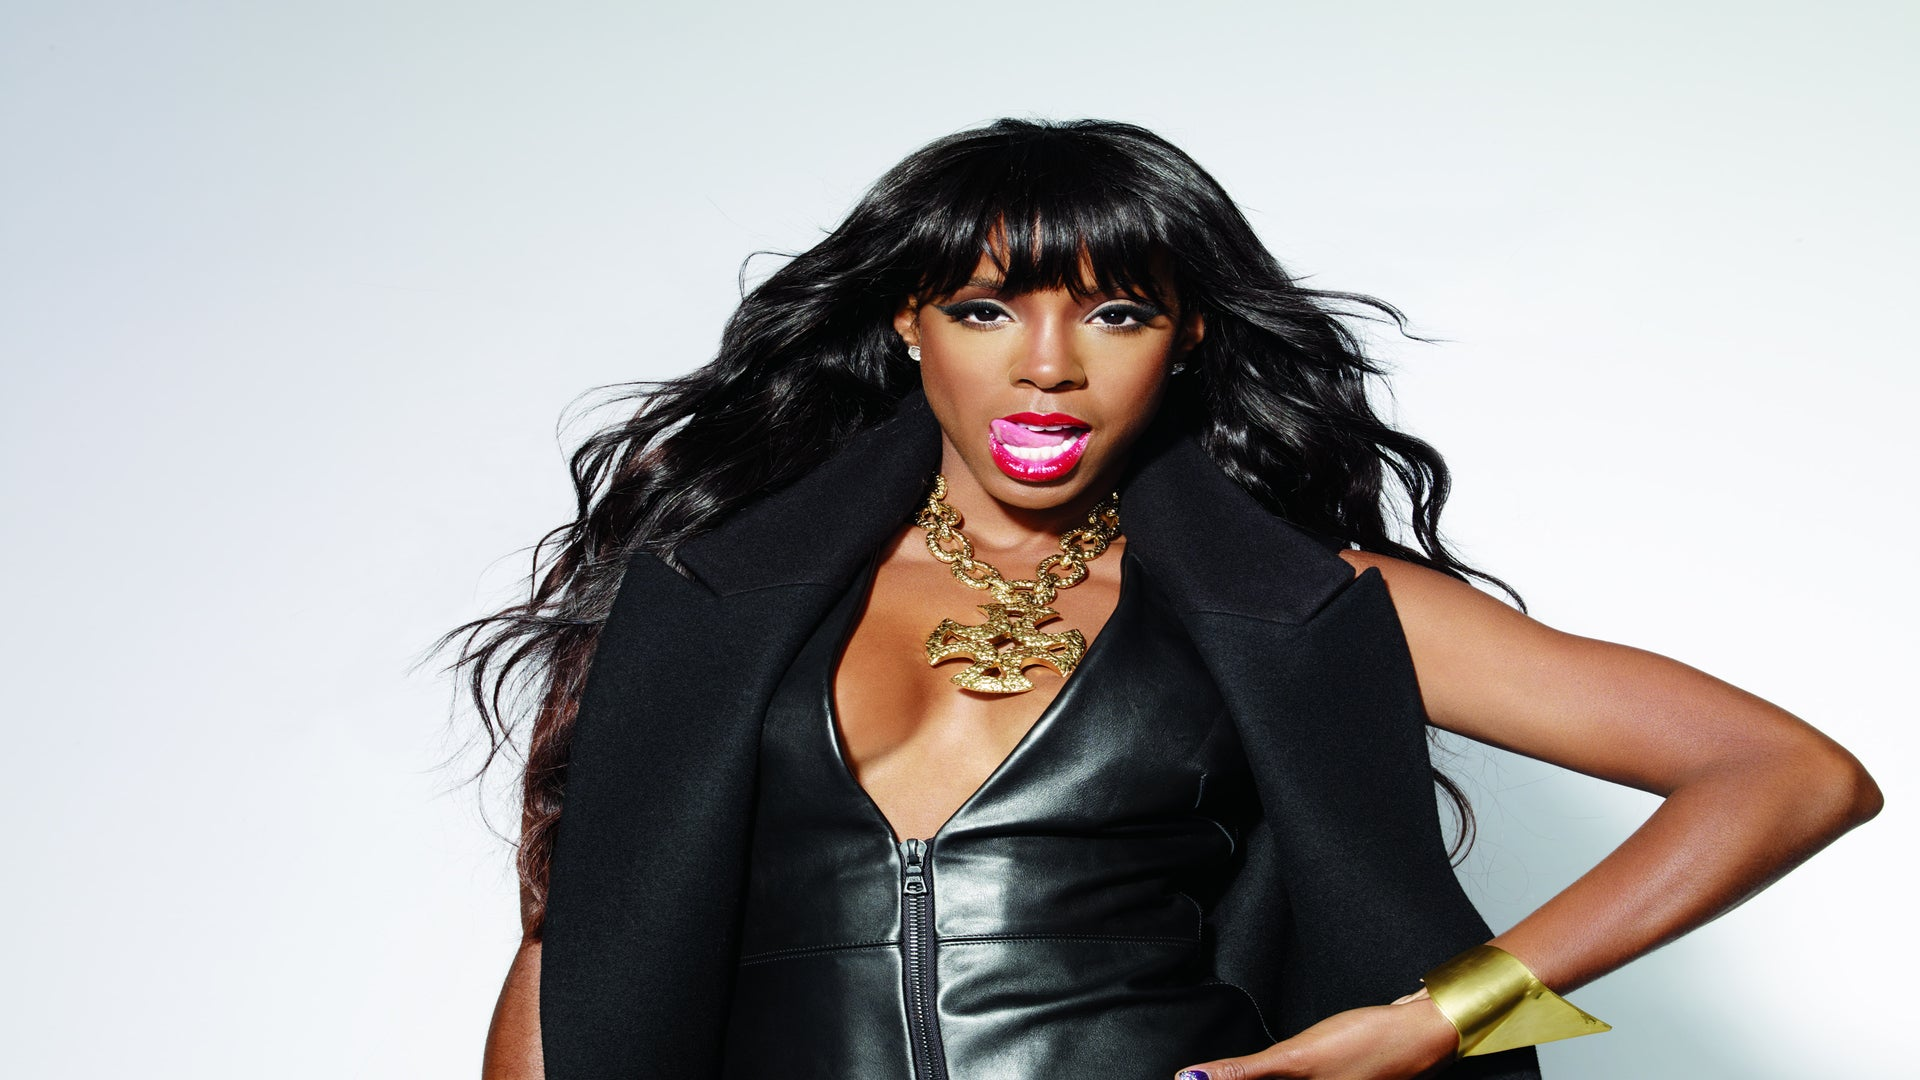 Kelly Rowland: 'What Makes Me Feel Beautiful'